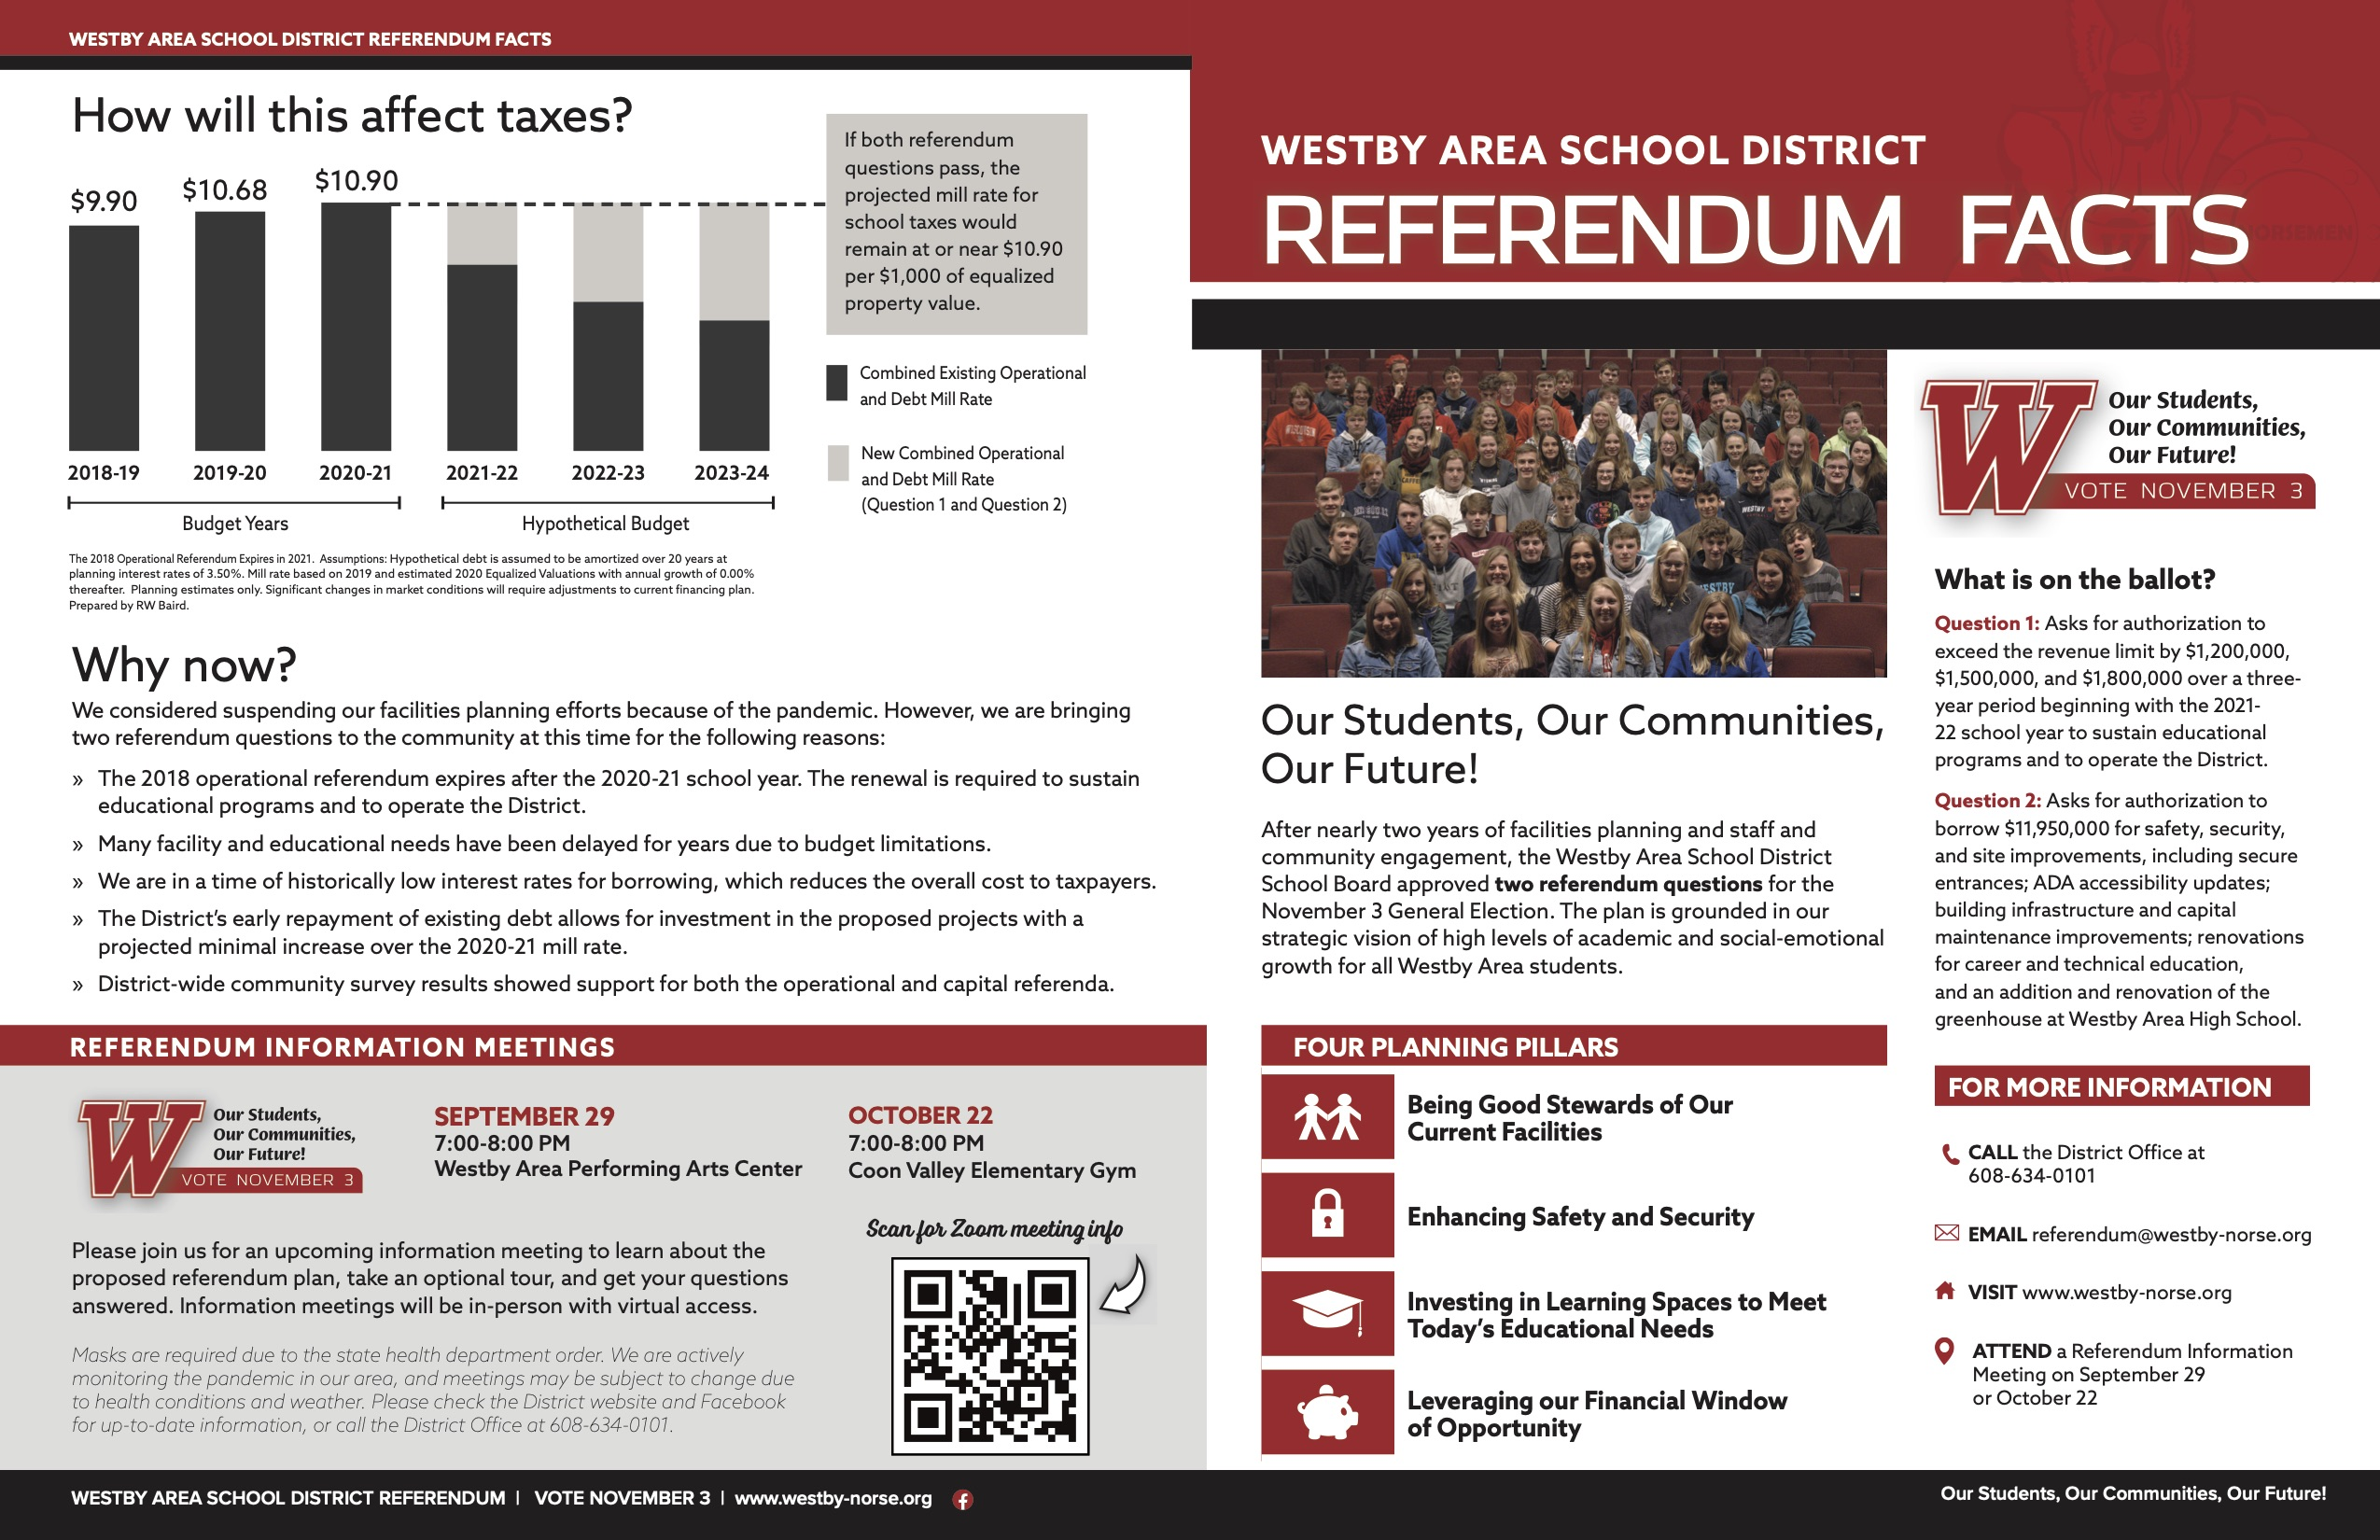 Referendum Facts Infographic